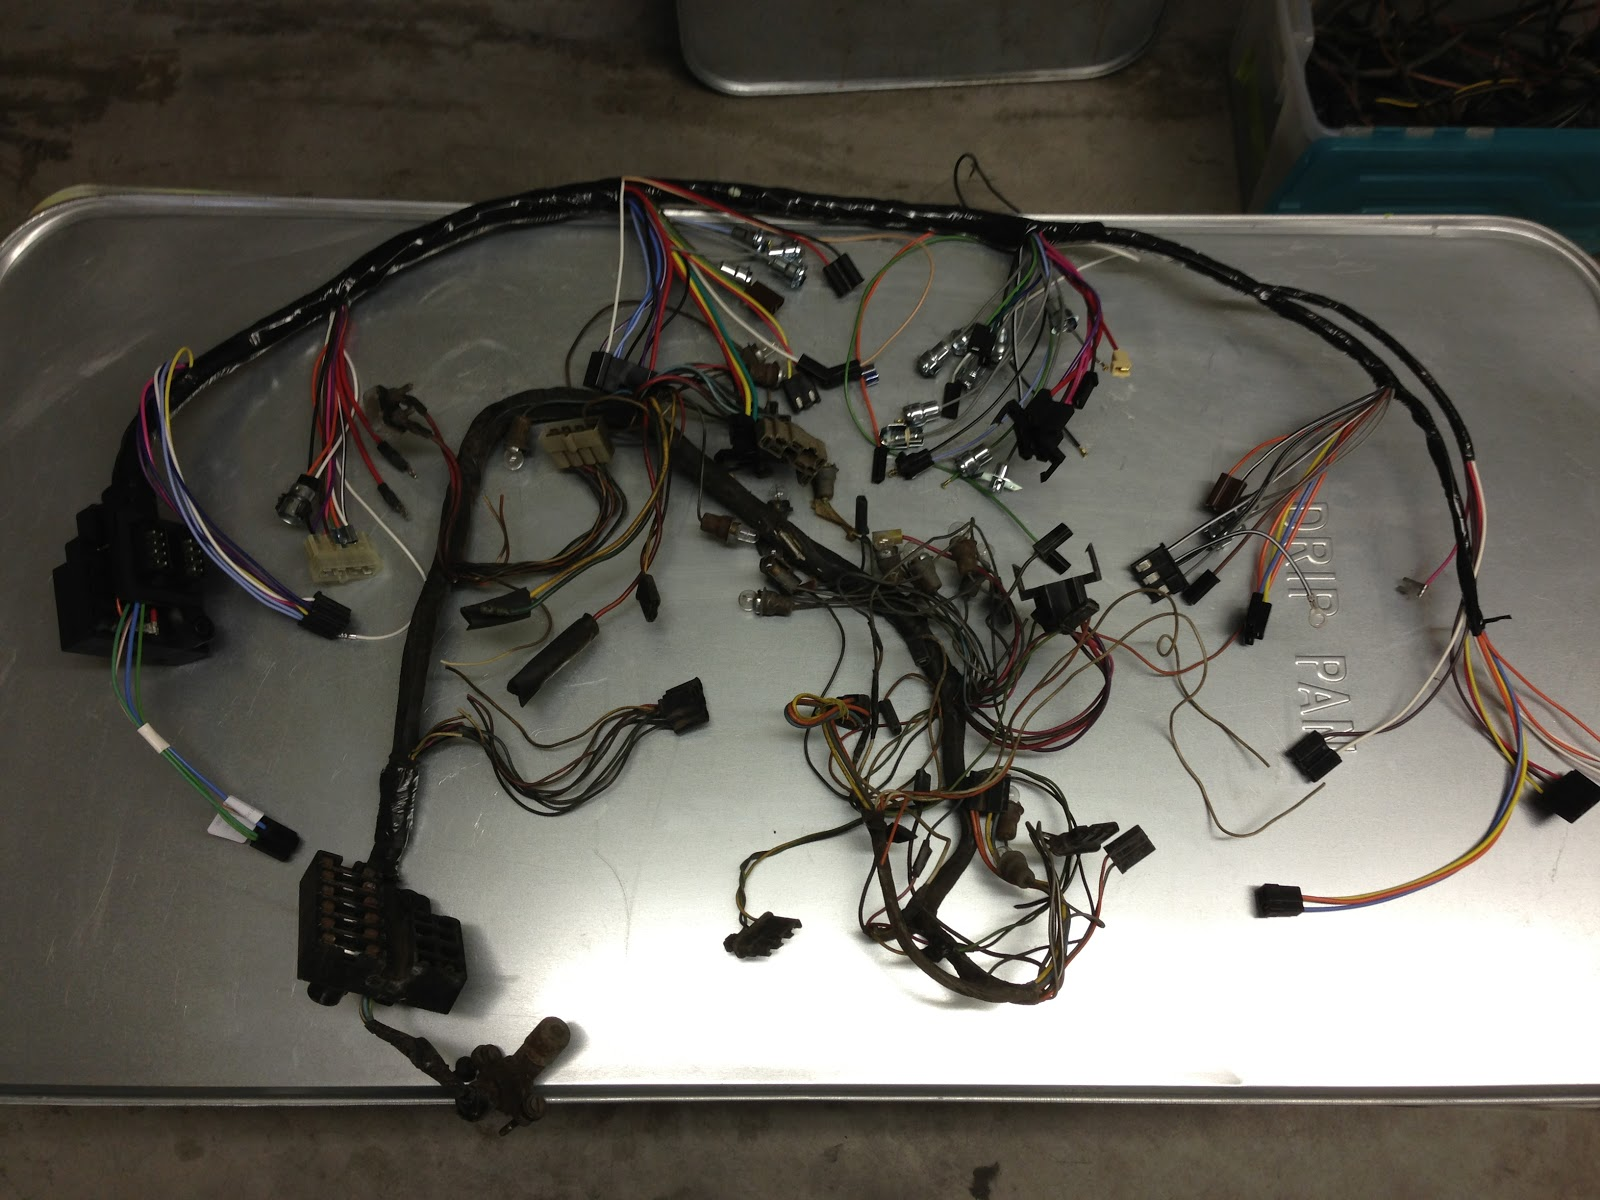 1963 Corvette Sting Ray Split Window Coupe Restoration Wiring Main Harness After I Had The Dash In Position It Was Time To Identify Each Of Wires This Is A Tedious Exercise That Still Isnt Complete